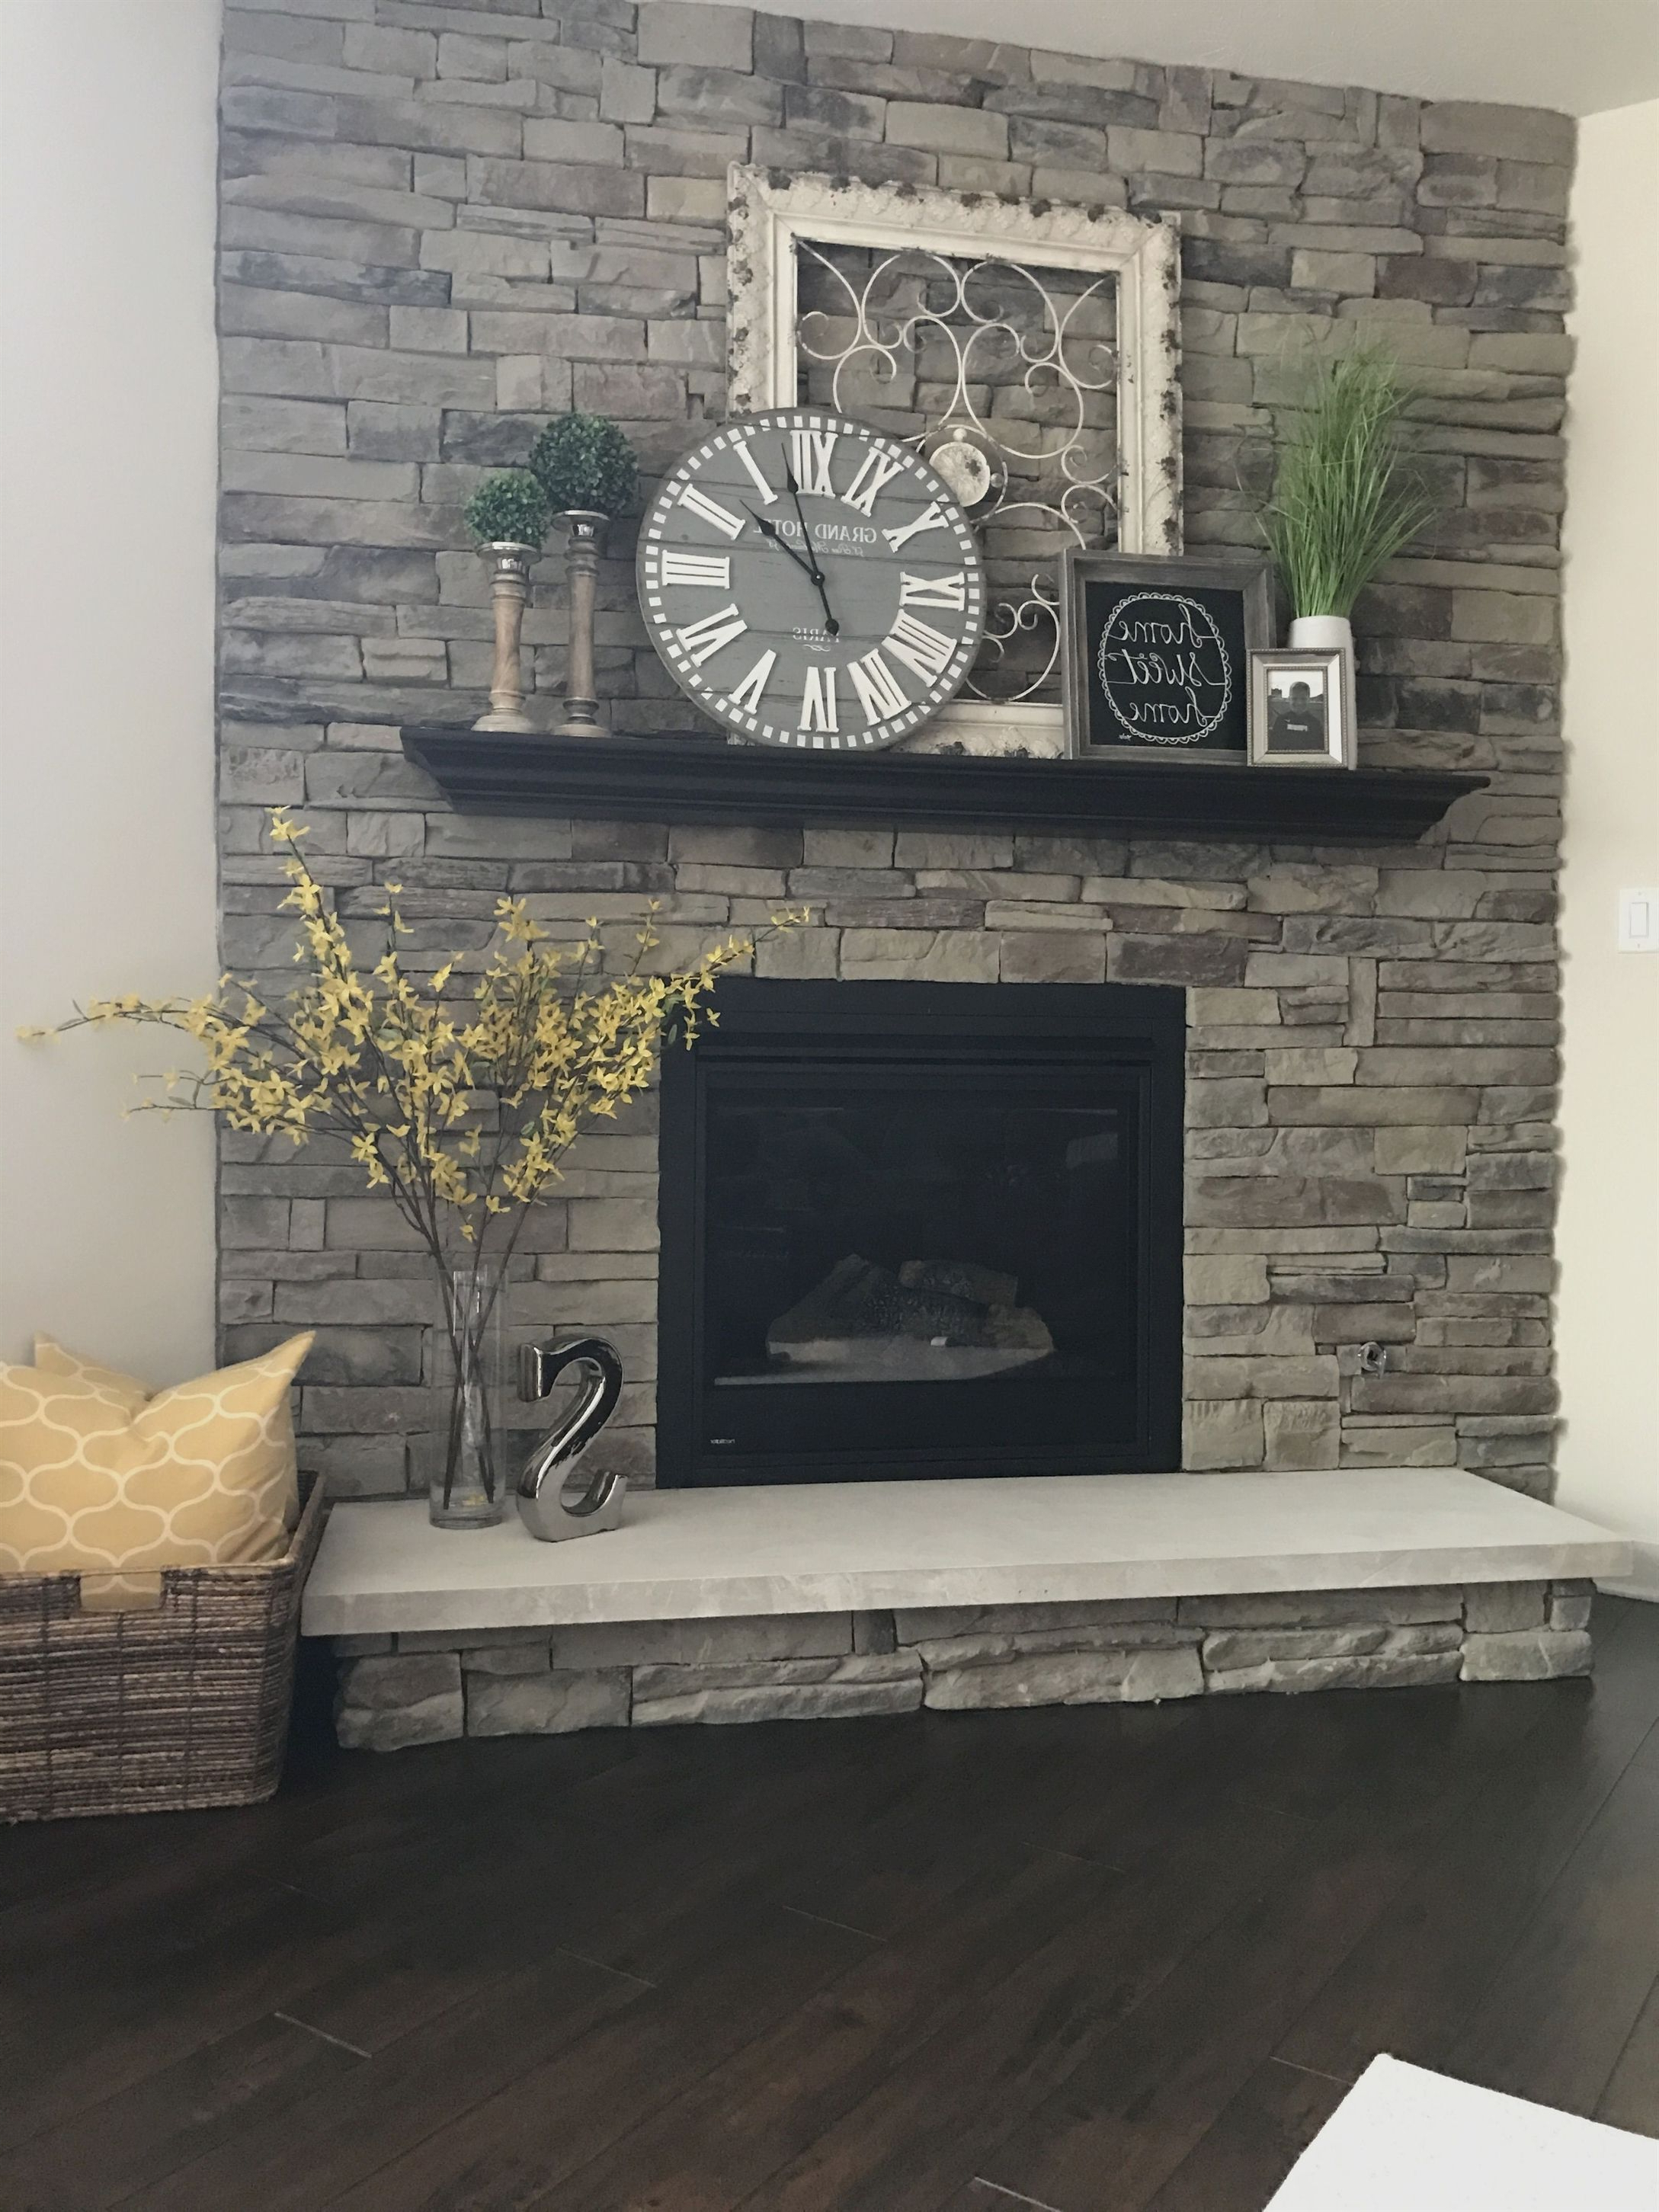 Best And Newest My Fireplace.tal Frame, Home Sign, & Clock (hobby Lobby) (View 18 of 20)